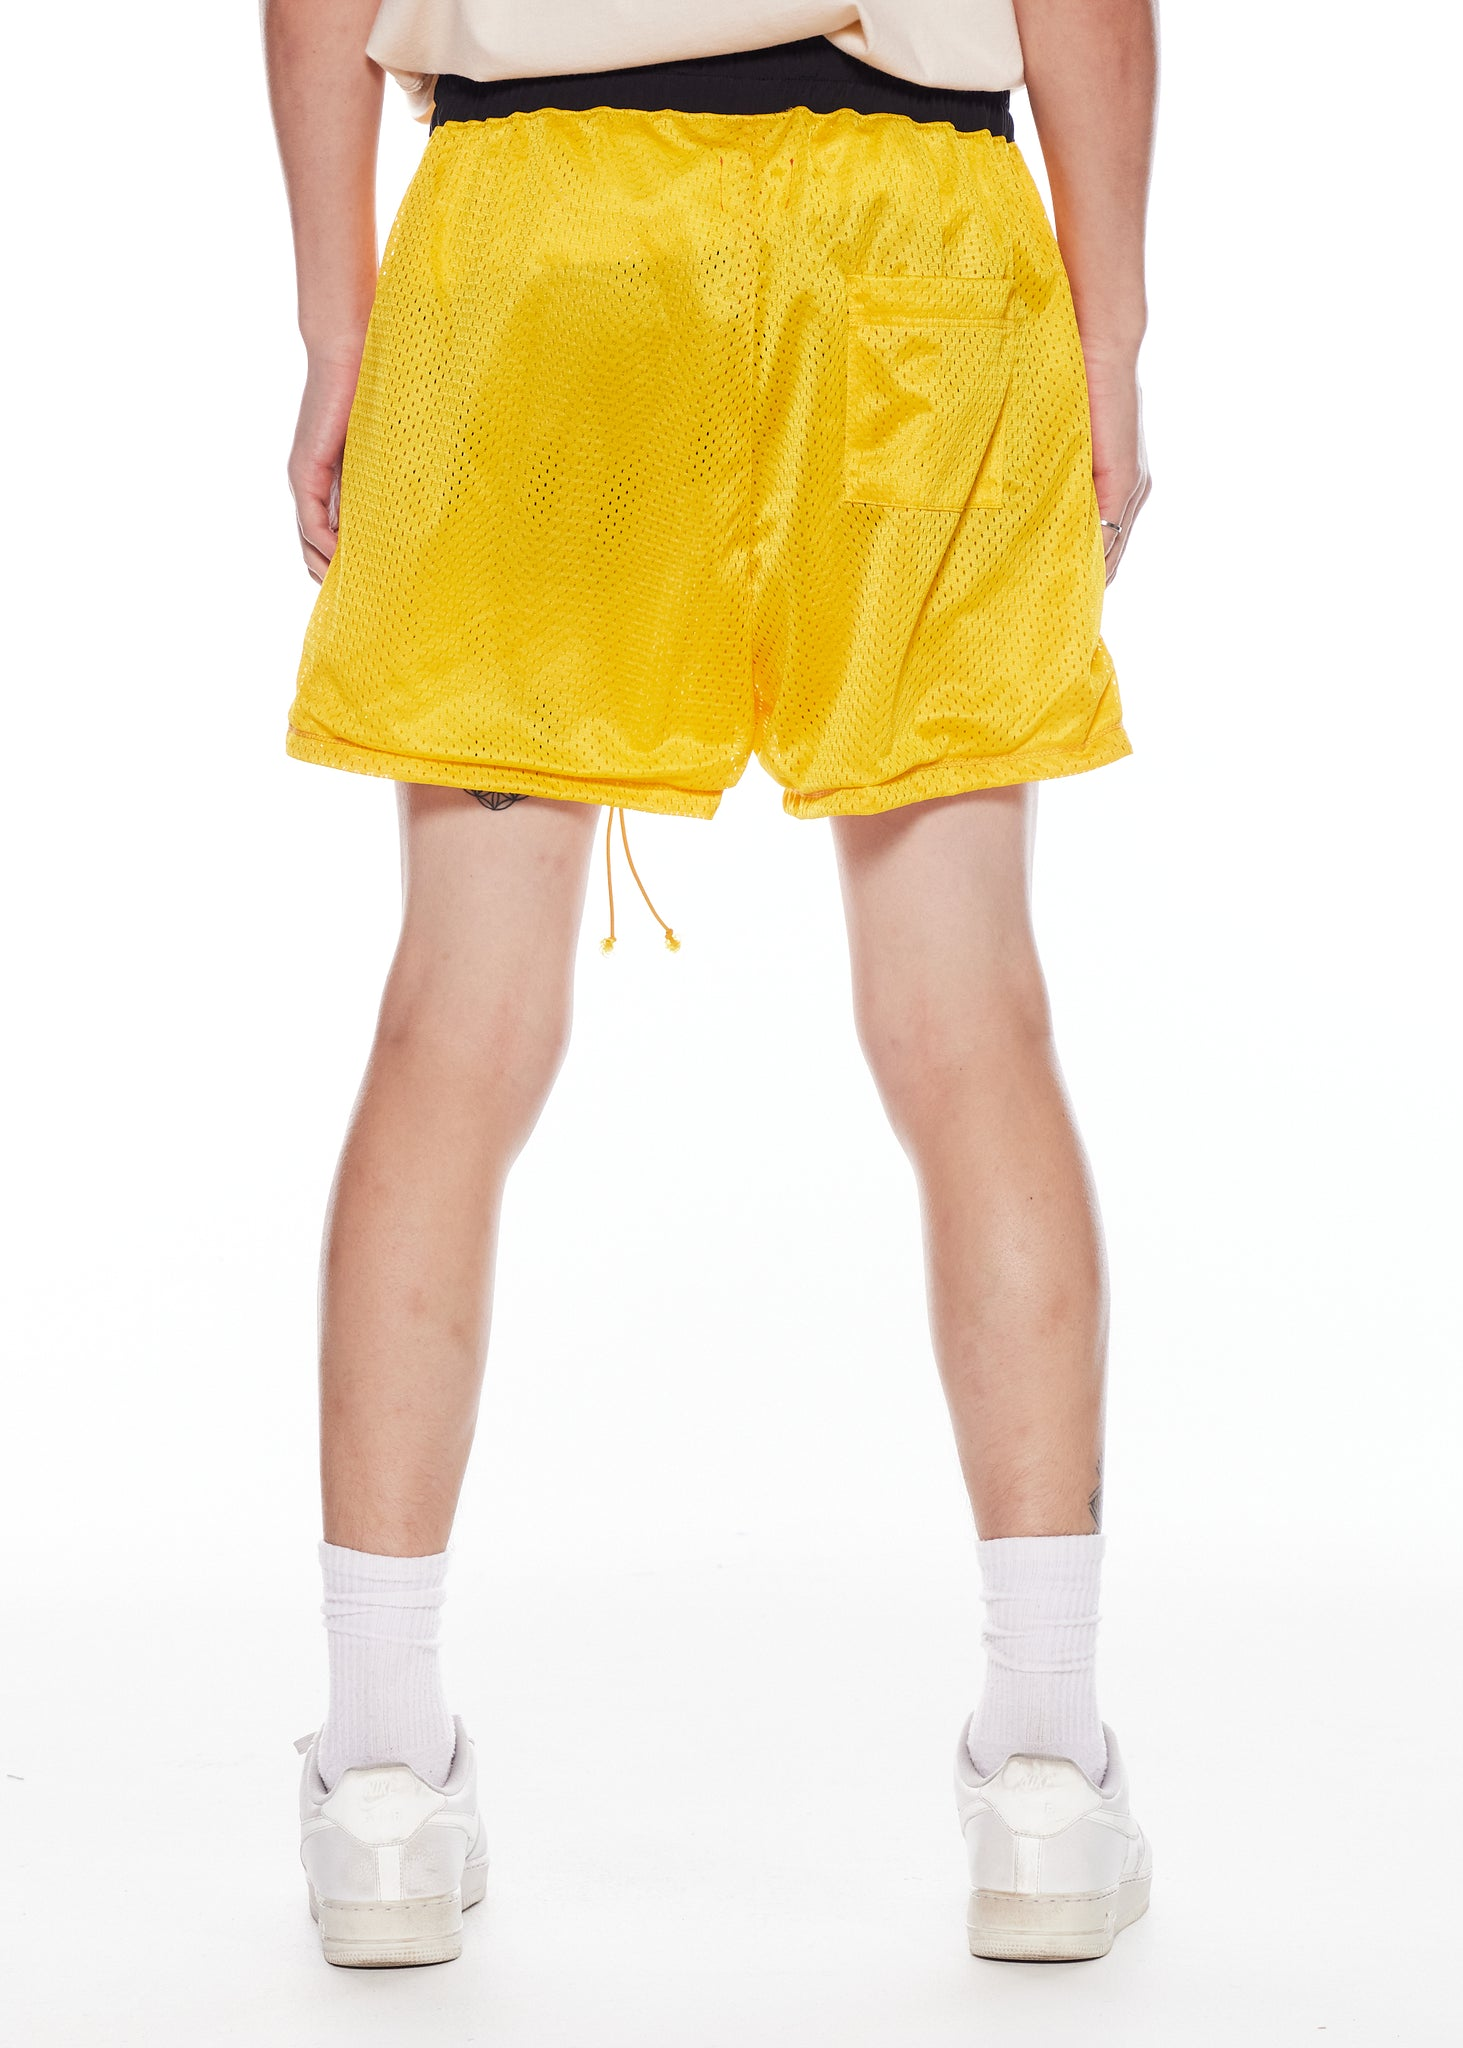 DSM Shorts - Yellow